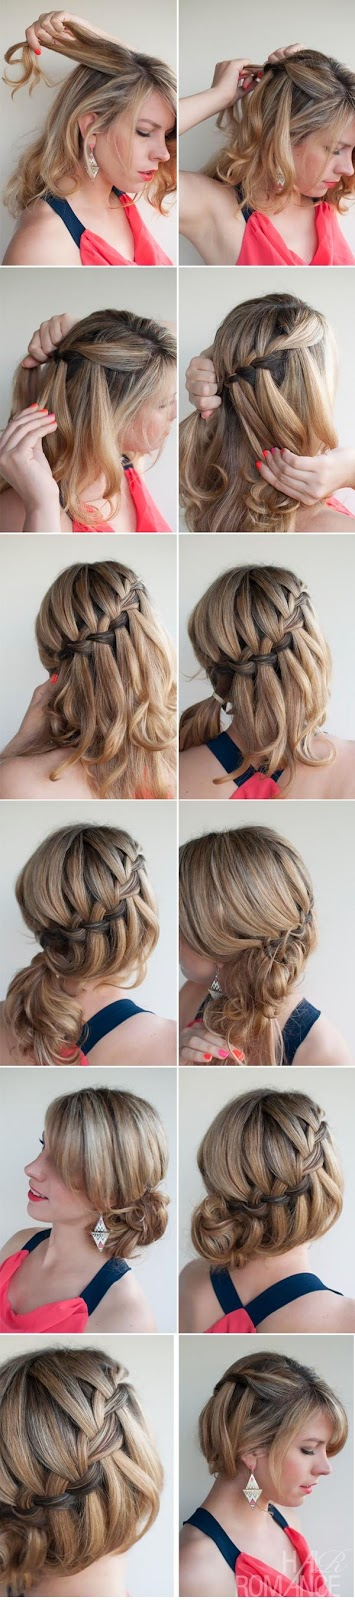 11 interesting and useful hair tutorials for every day Diy fashion of hairstyle